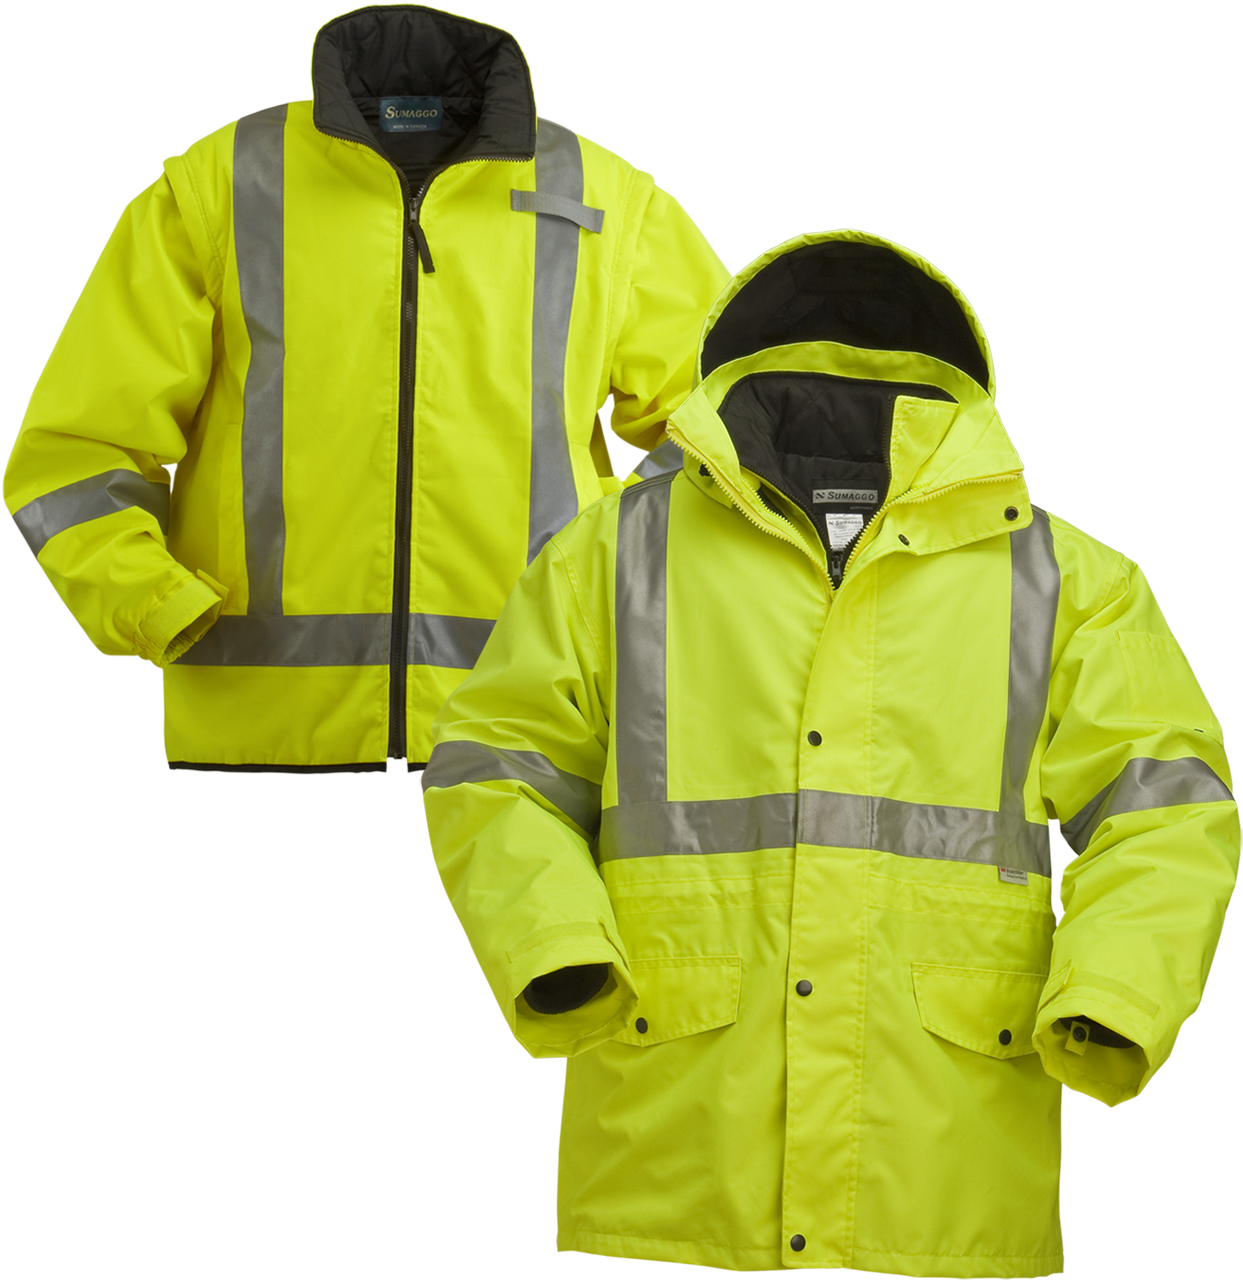 Picture of Sumaggo High Vis 4-In-1 Jacket with Thinsulate Quilted Inner Jacket